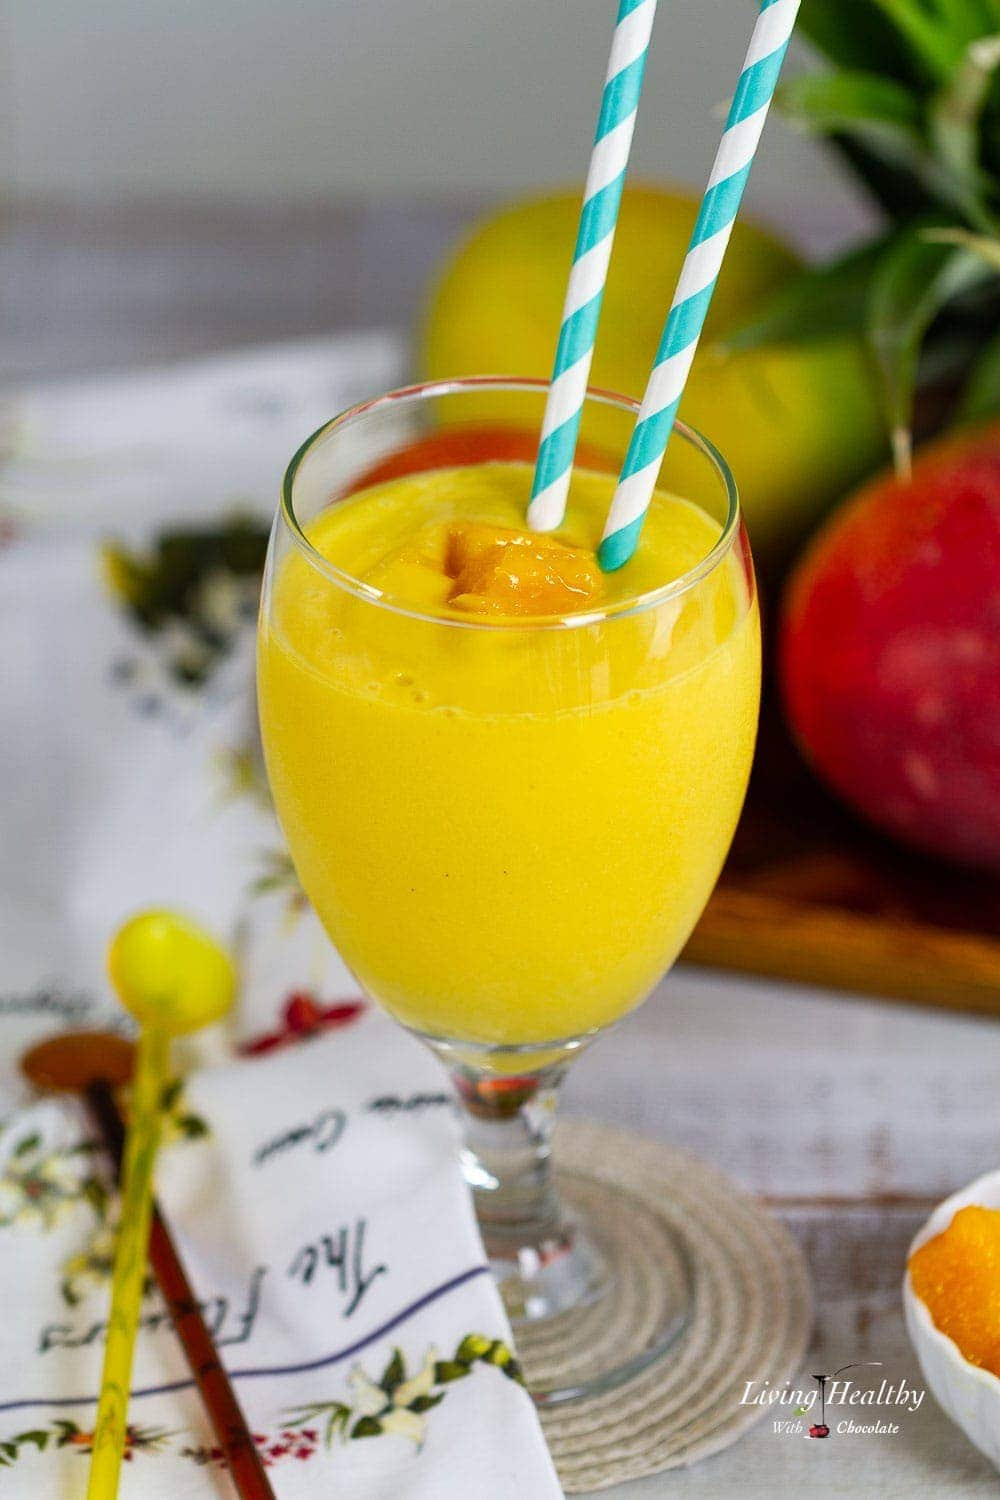 Close up of a mango smoothie in a glass with two straws